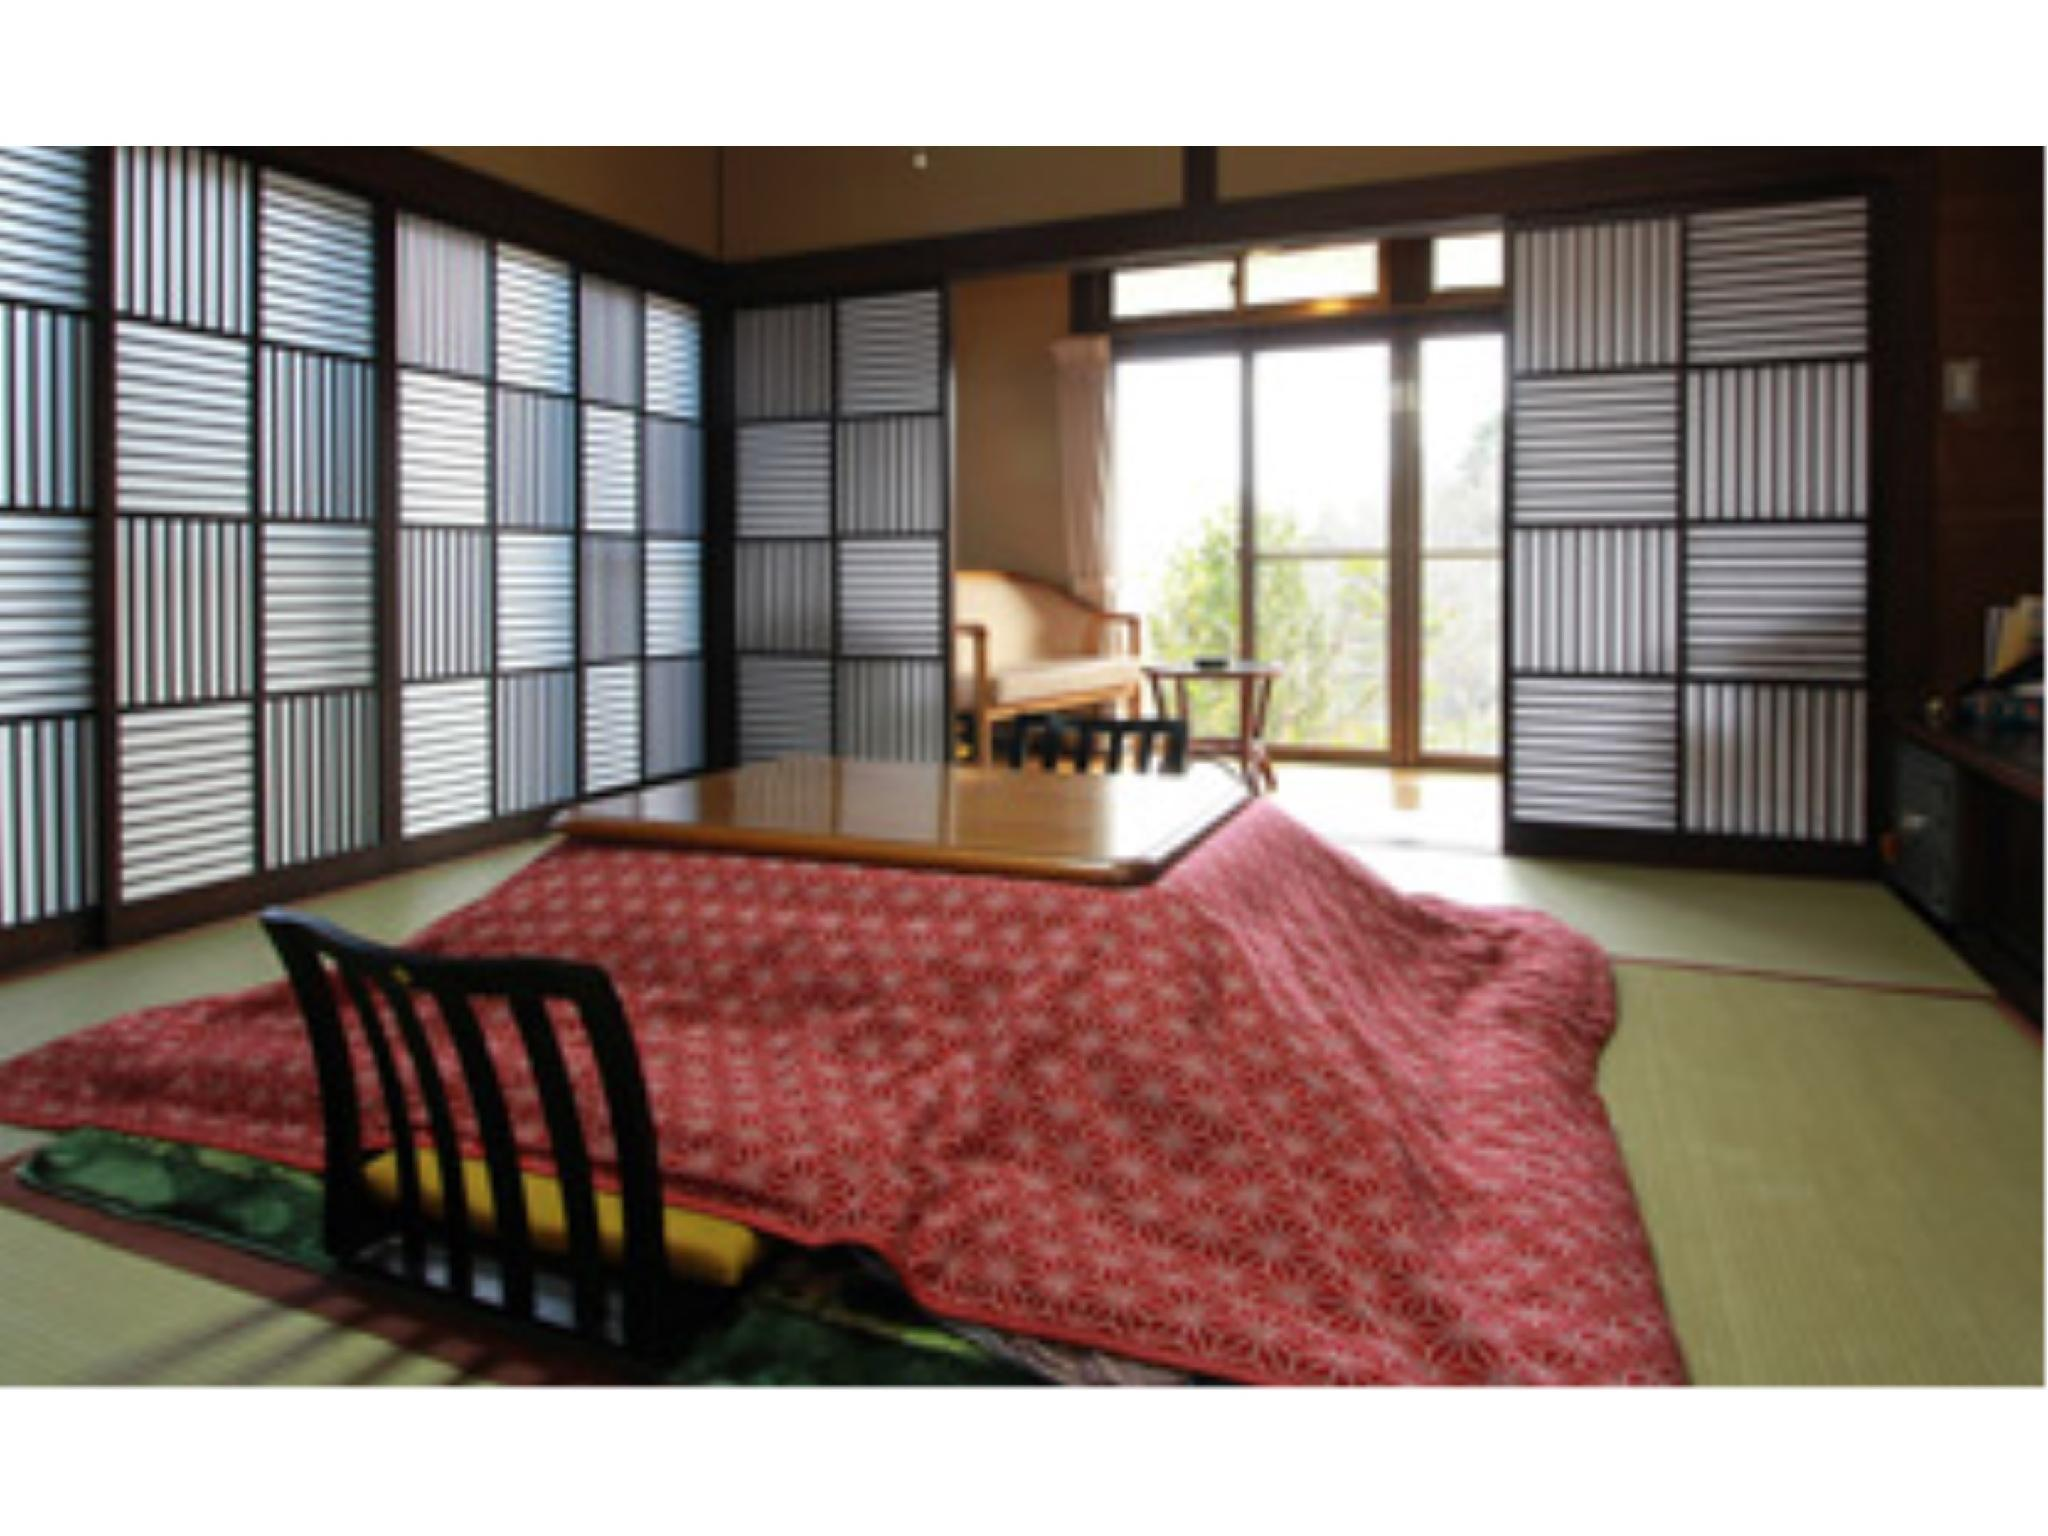 다다미 객실(본관) *객실내 세면대, 화장실 없음 (Japanese-style Room (Main Building) *No washroom or toilet in room)